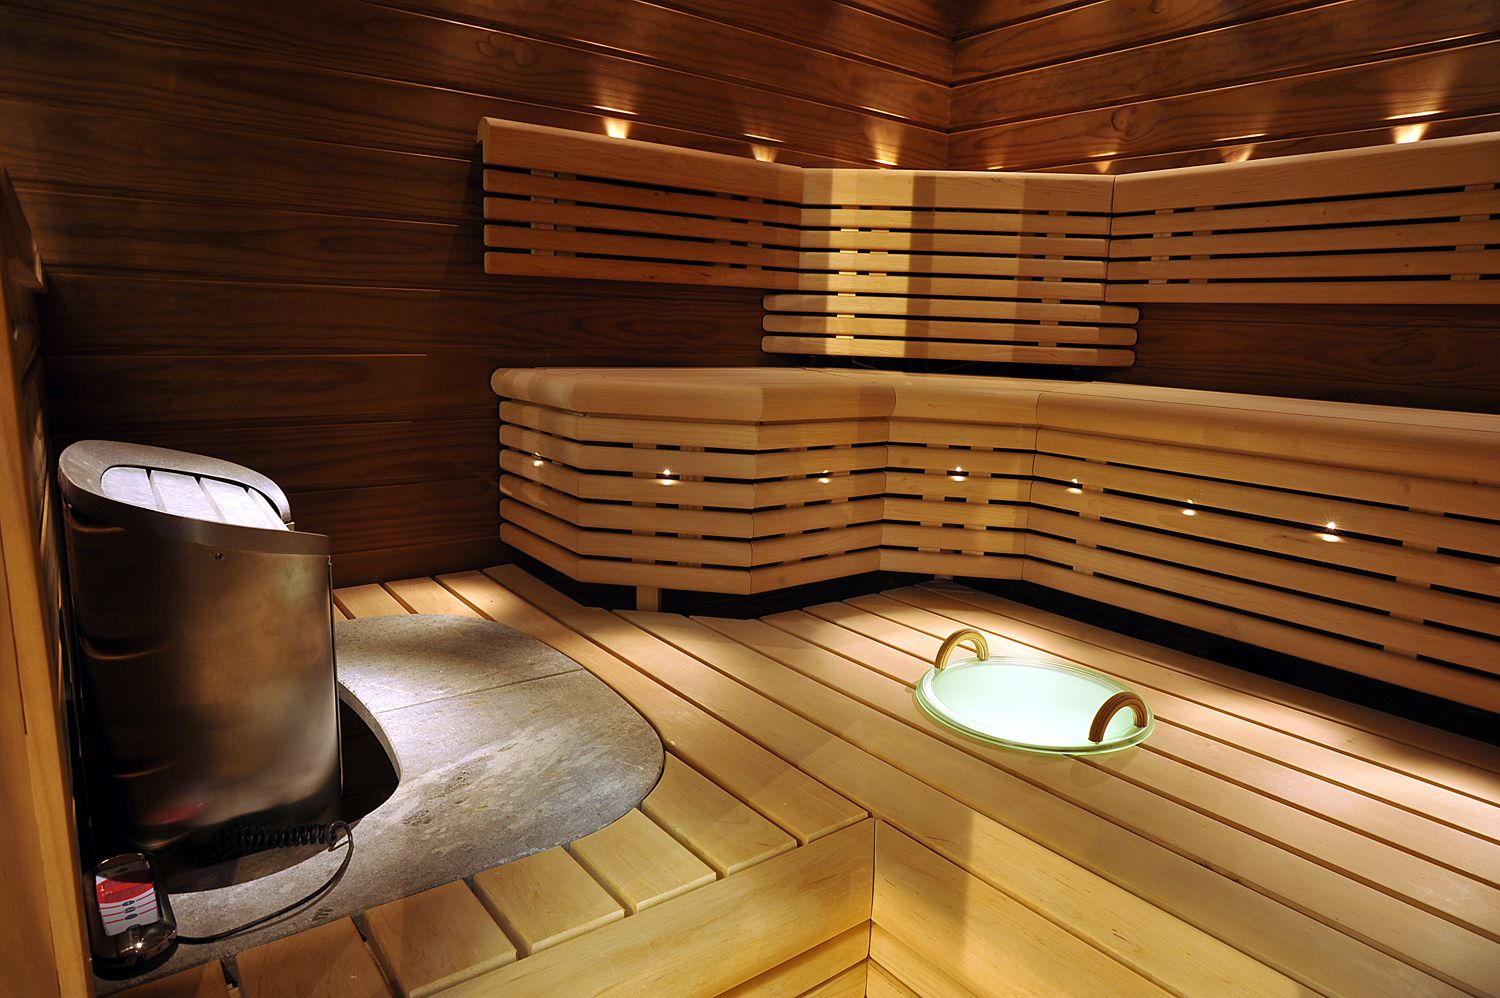 sauna design ideen home private steam sauna room design ideas sauna design ideas - Sauna Design Ideas